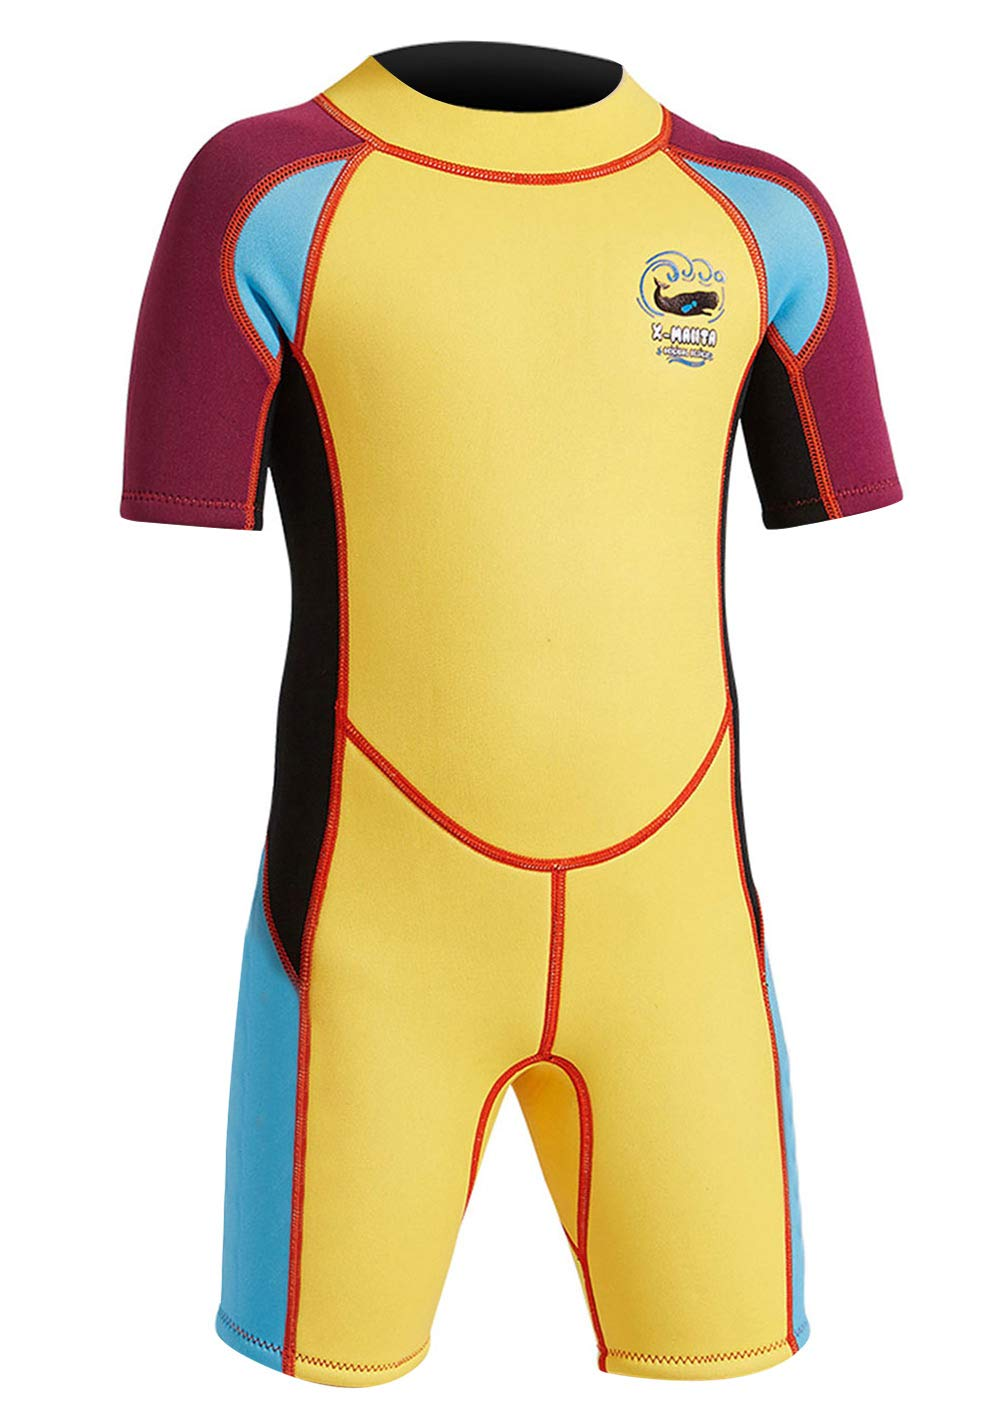 DIVE & SAIL Kids Warm Wetsuit 2.5MM One Piece Short Sleeve Shorty Suit Sun UV Protection Swimming Diving Suit Swimwear for Boys Yellow L by DIVE & SAIL